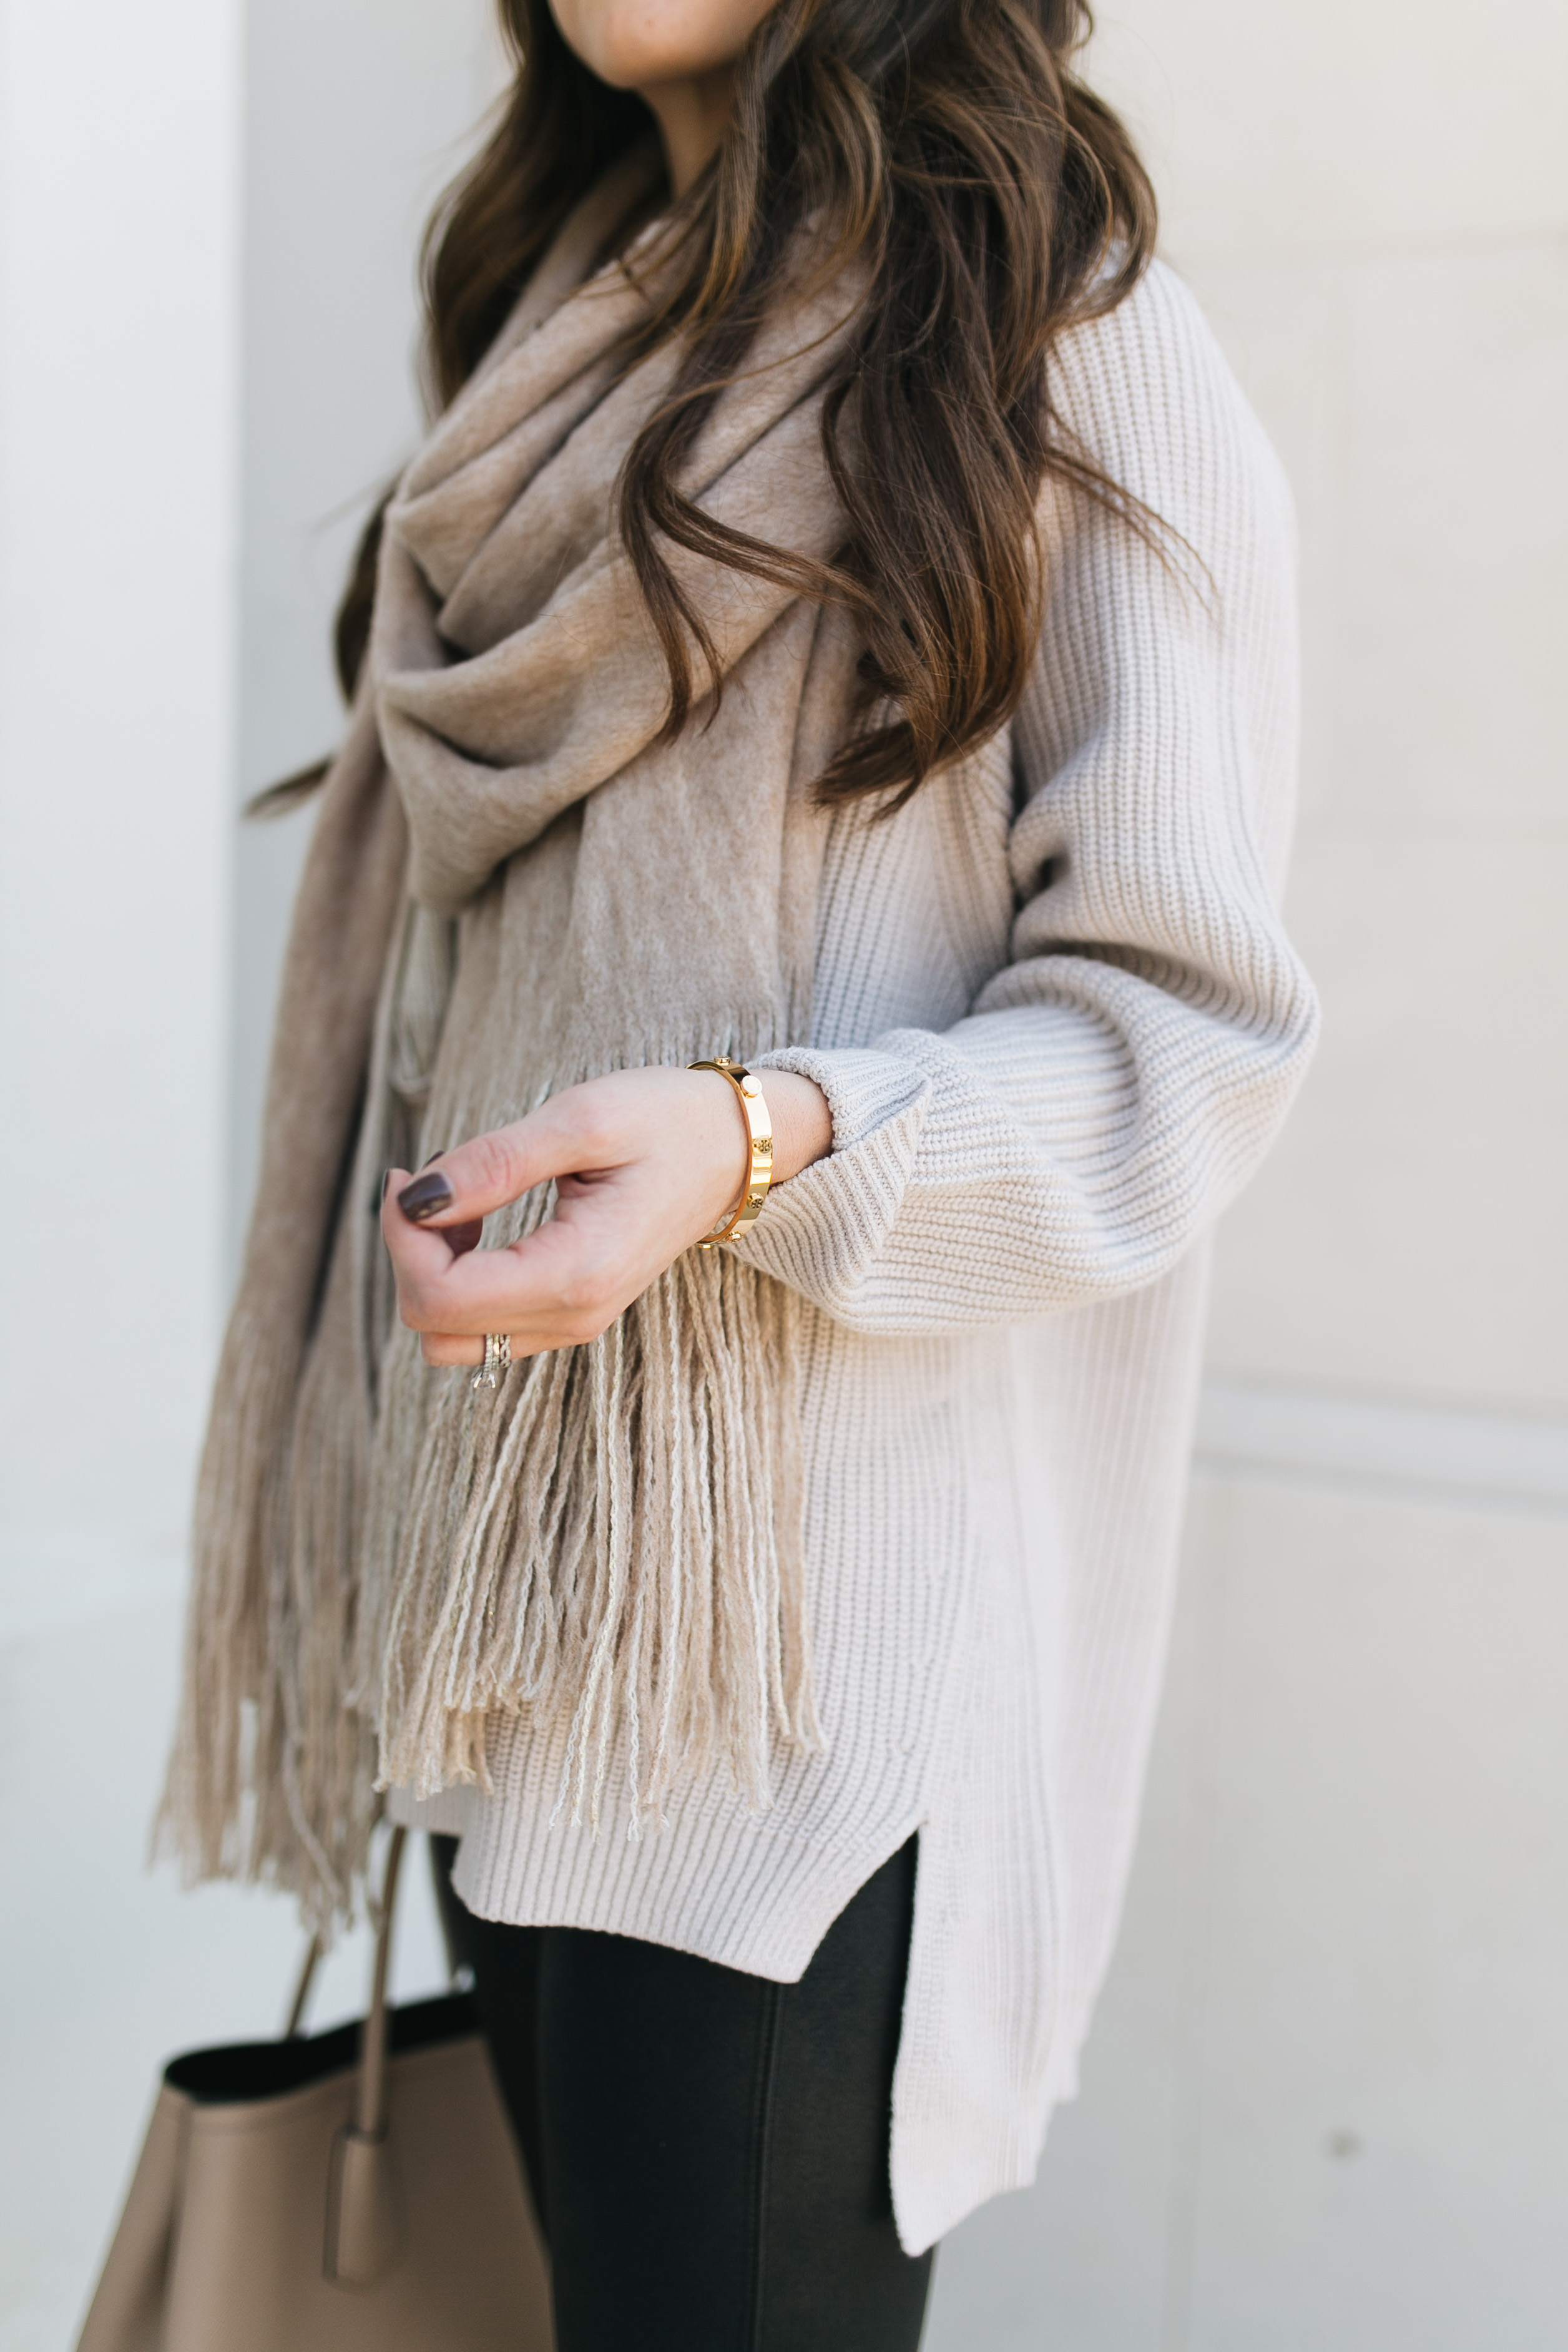 Fashion blogger Daryl-Ann Denner styles oatmeal tunic sweater with faux leather leggings and fringe scarf and cartier love bracelet dupe